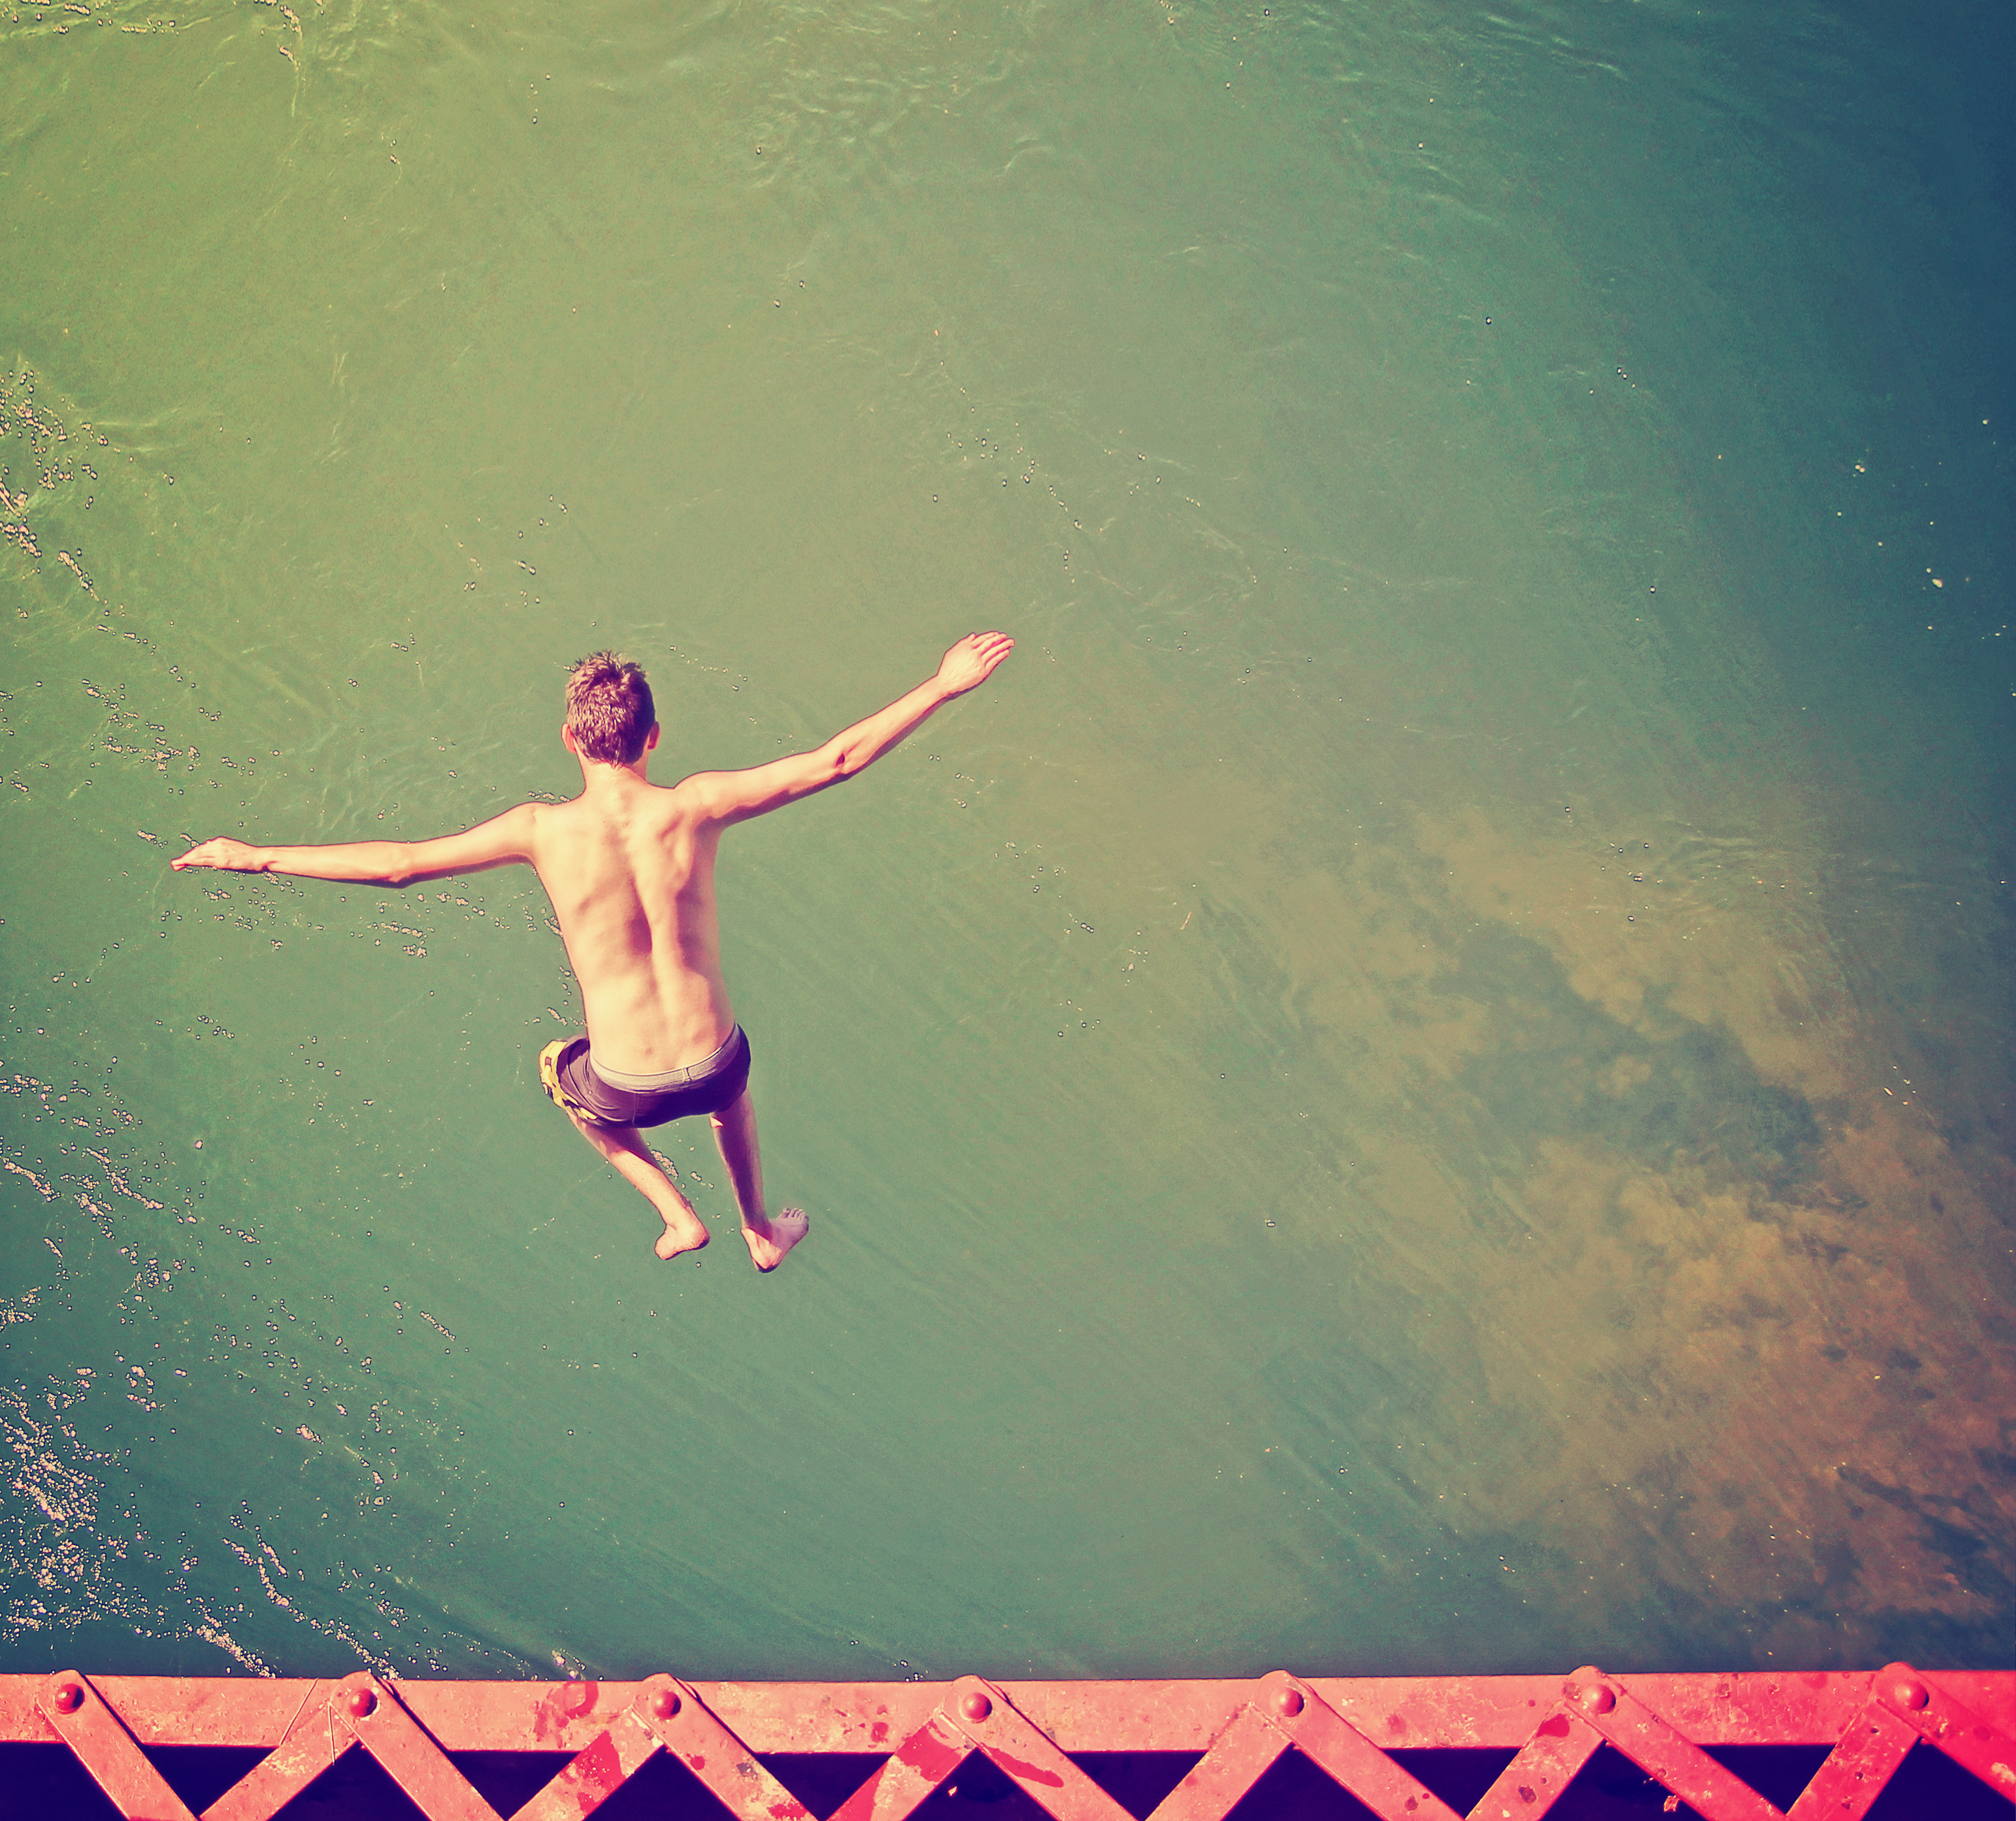 15 Liberating Ways to Live an Inspired Life [Part 1]   Inspire Portal